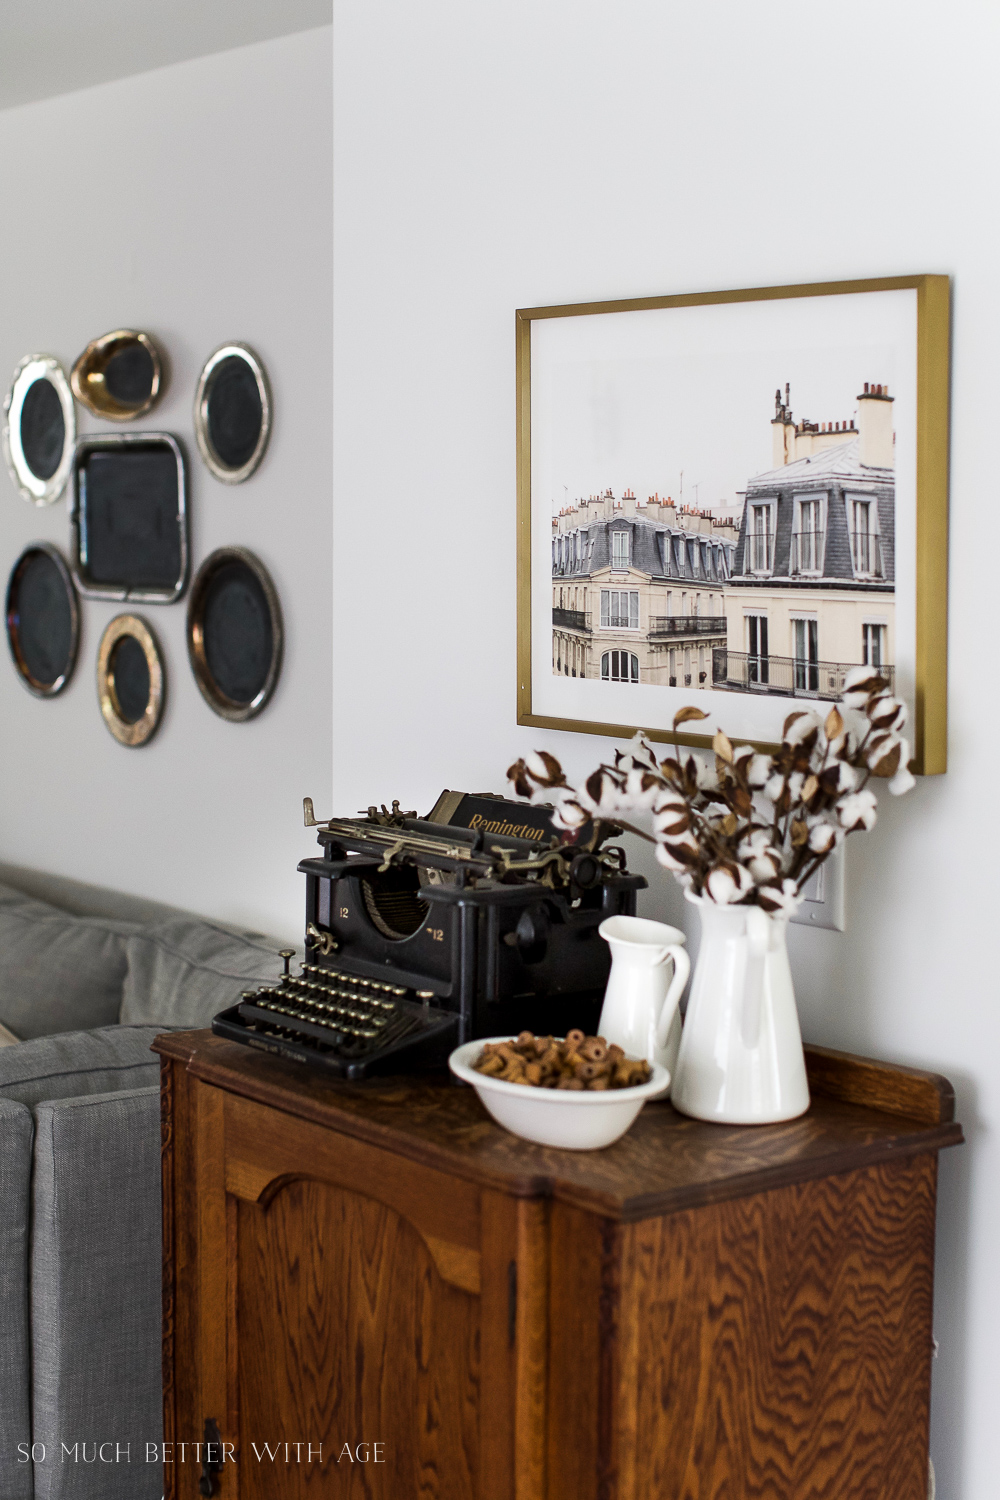 Paris Building, How to Pick Art with a French Vintage Vibe / wall art - So Much Better With Age